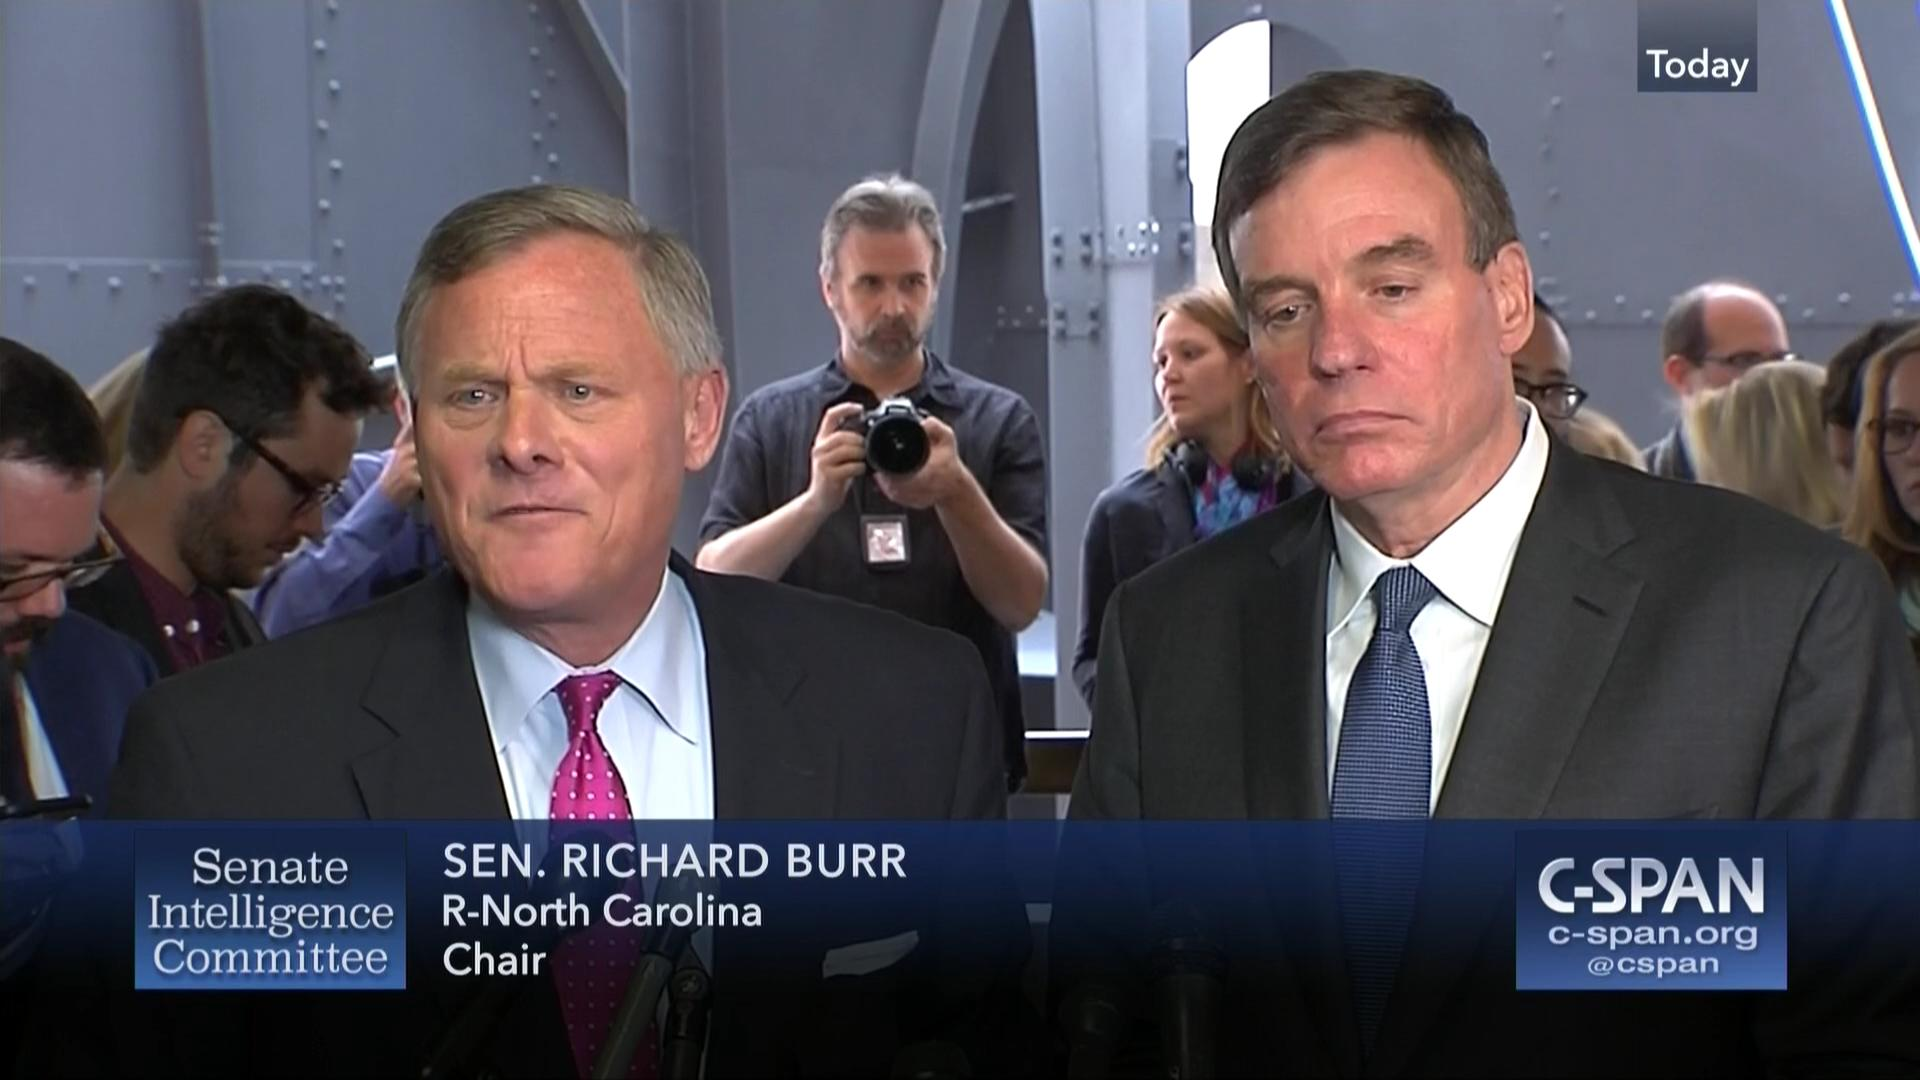 Image result for PHOTOS OF BURR AND WARNER ON SENATE INTEL COMMITTEE